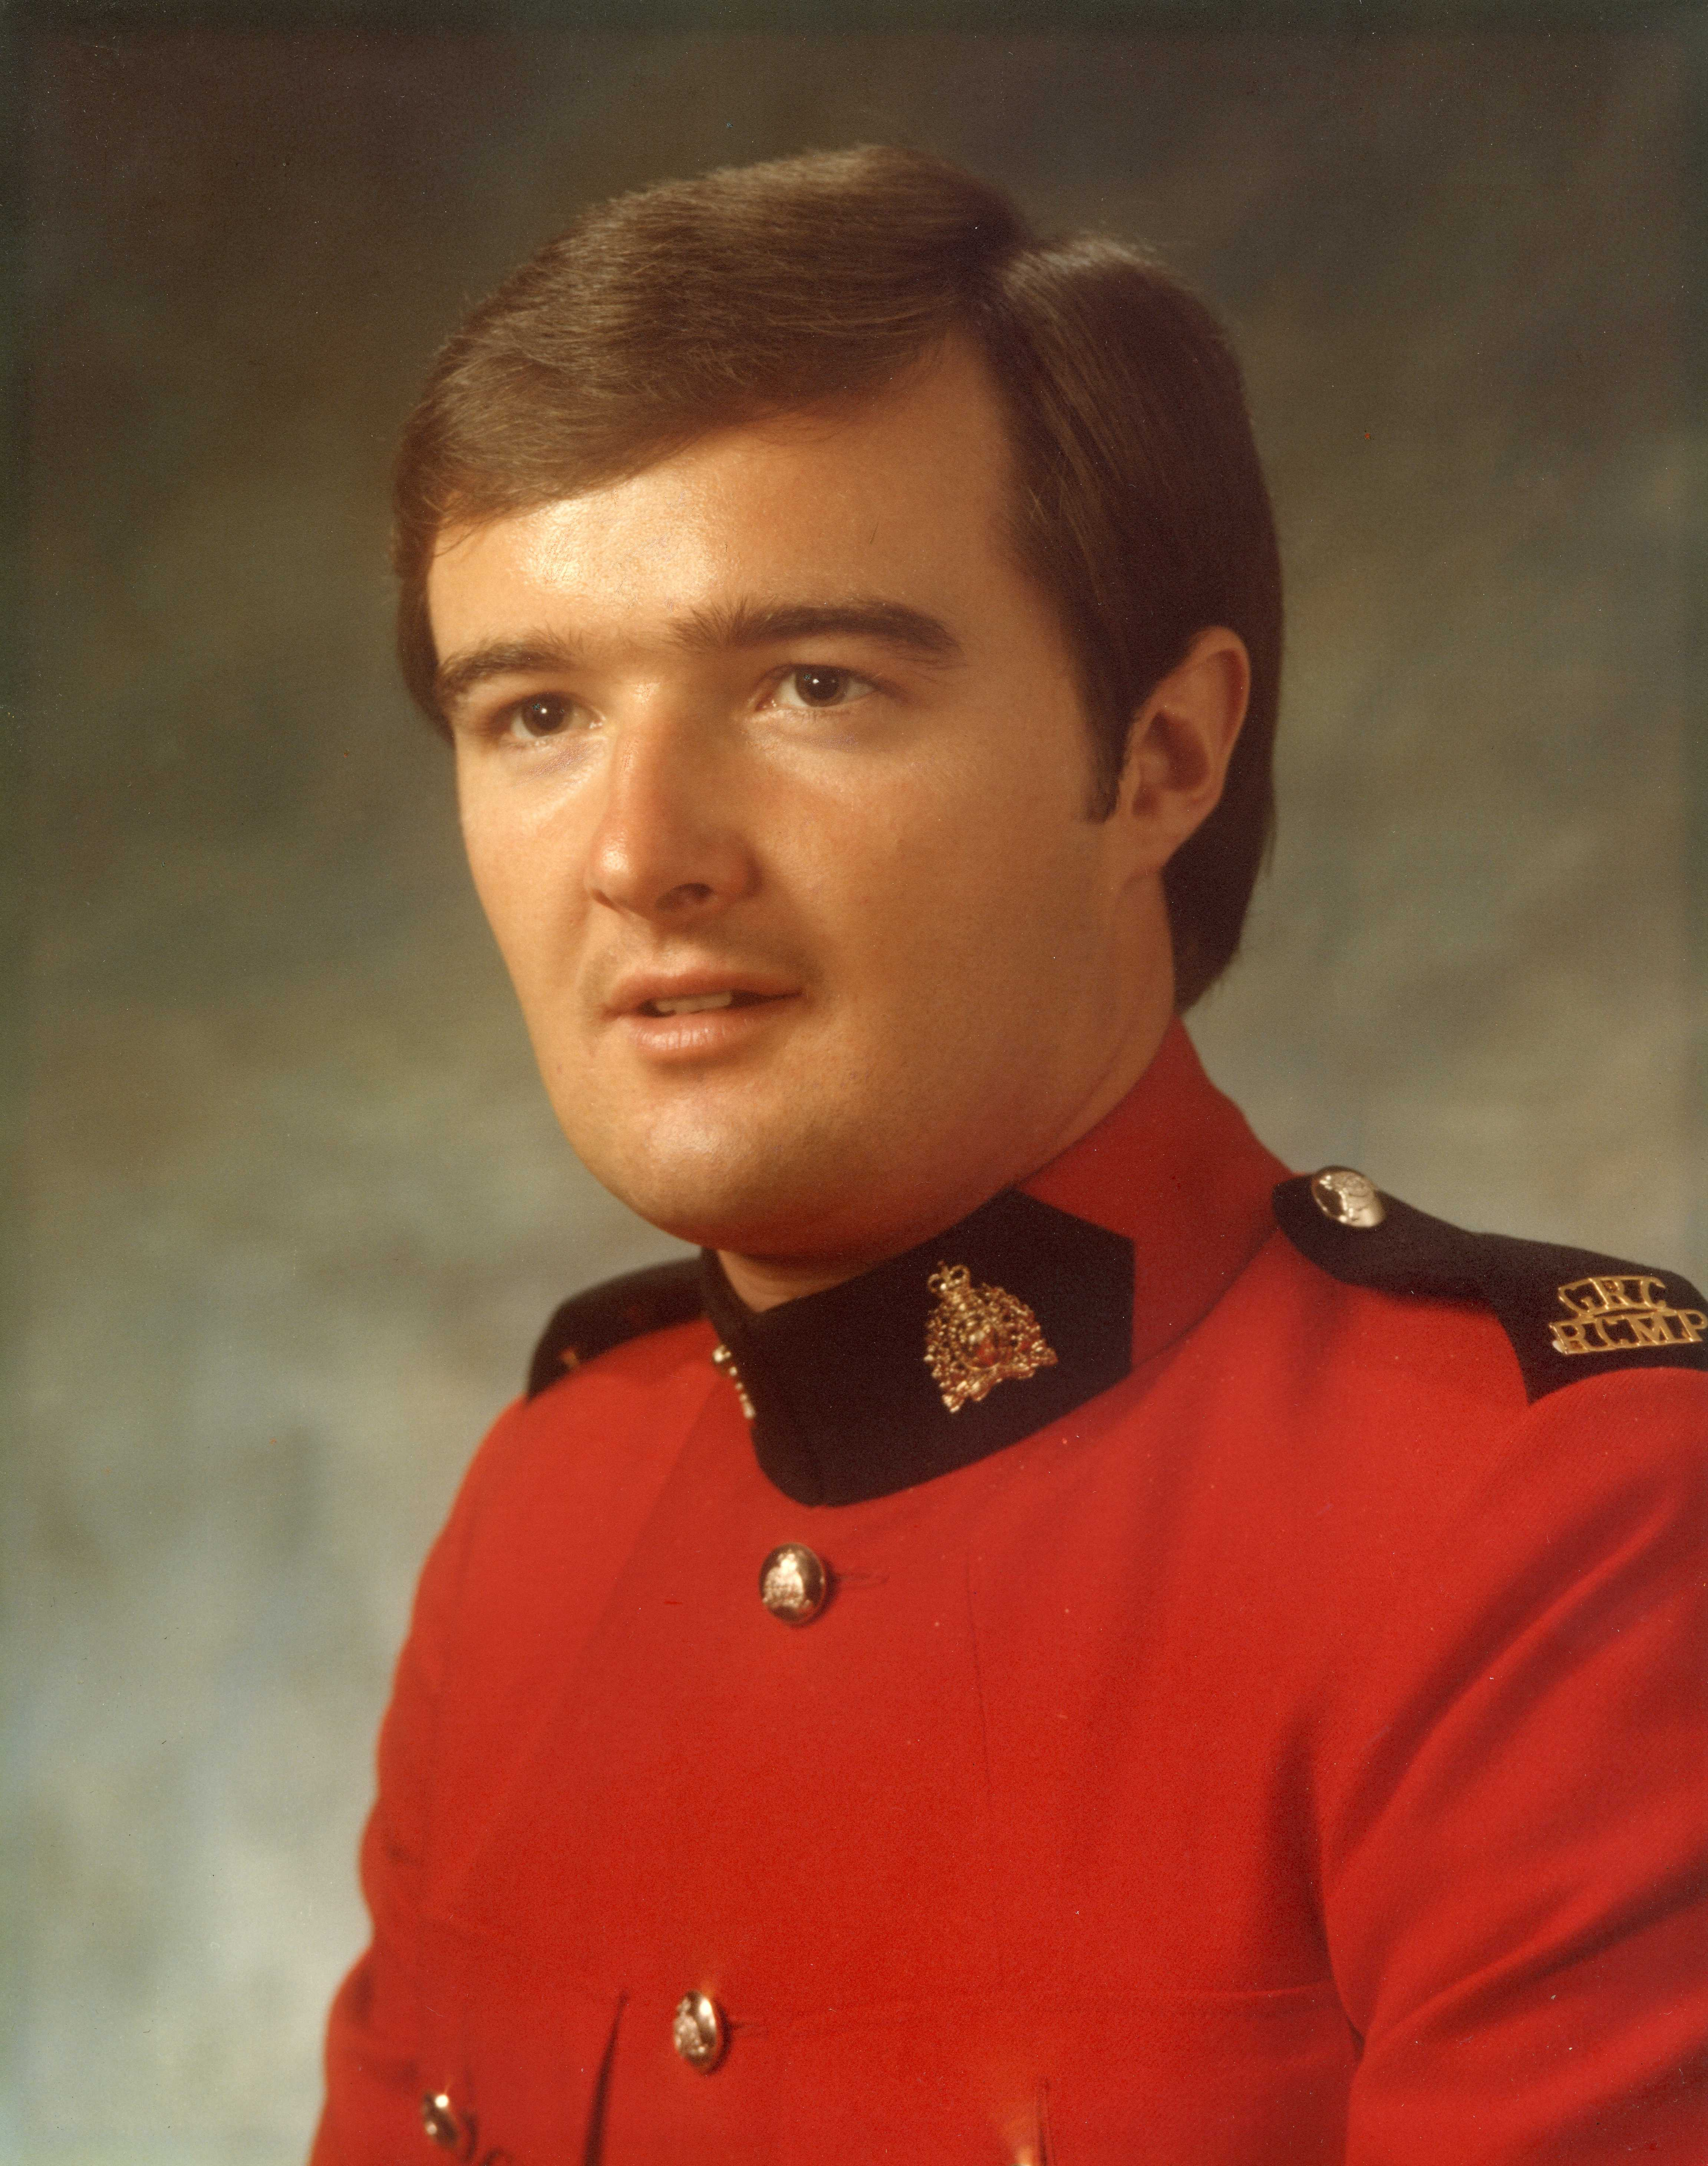 Constable Barry Flynn McKinnon– © Her Majesty the Queen in Right of Canada as represented by the Royal Canadian Mounted Police